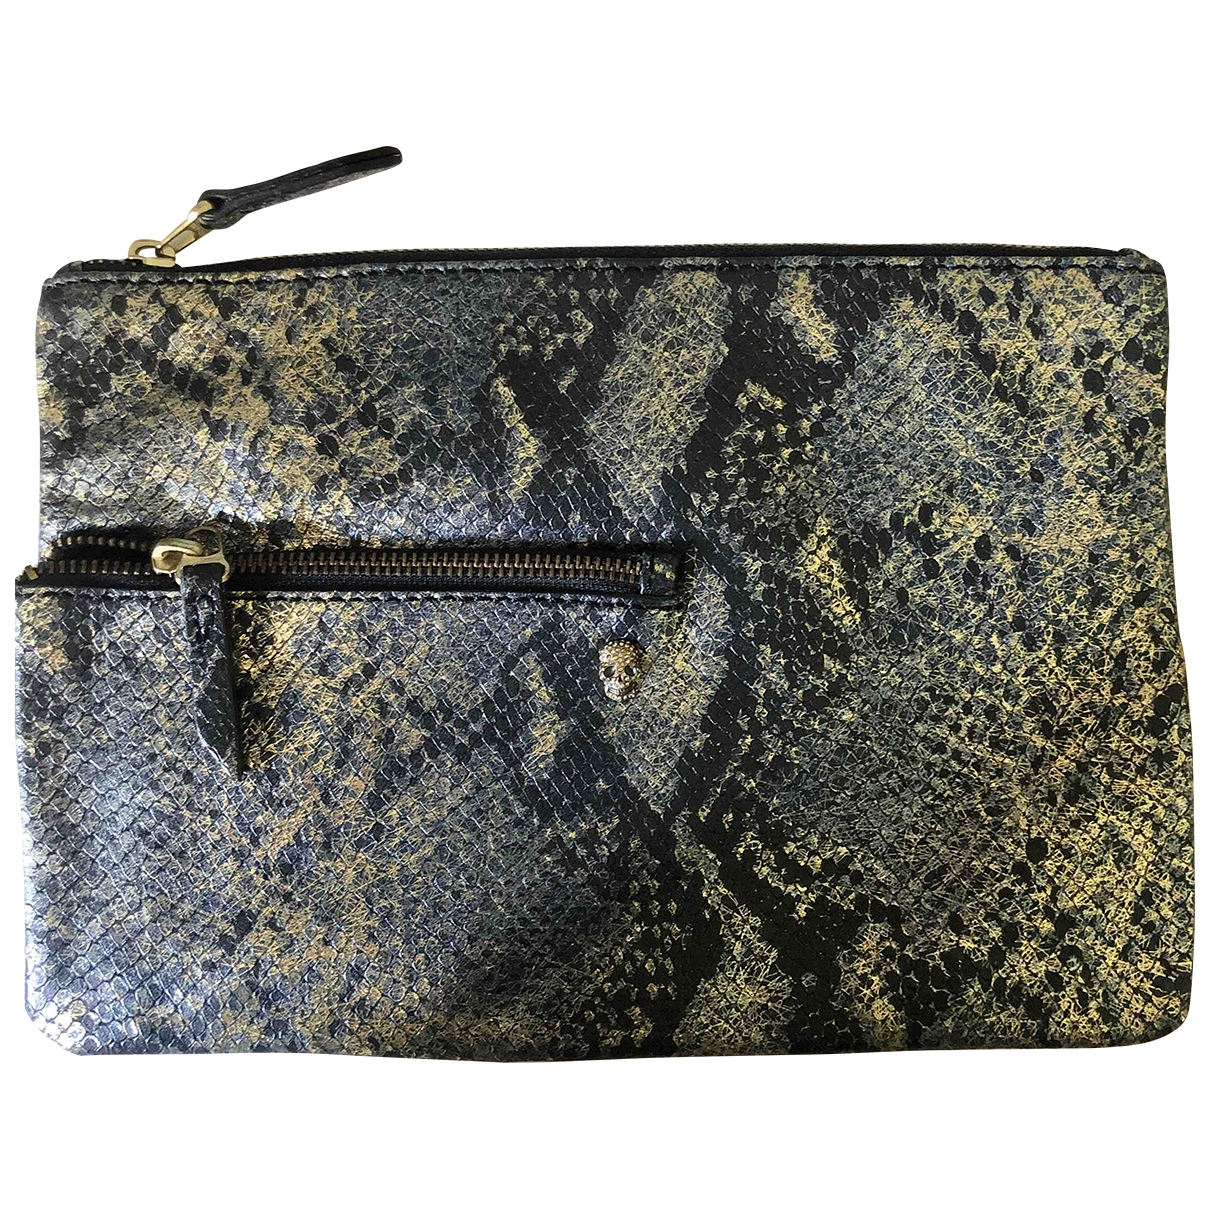 Zadig & Voltaire \N Multicolour Leather Clutch bag for Women \N